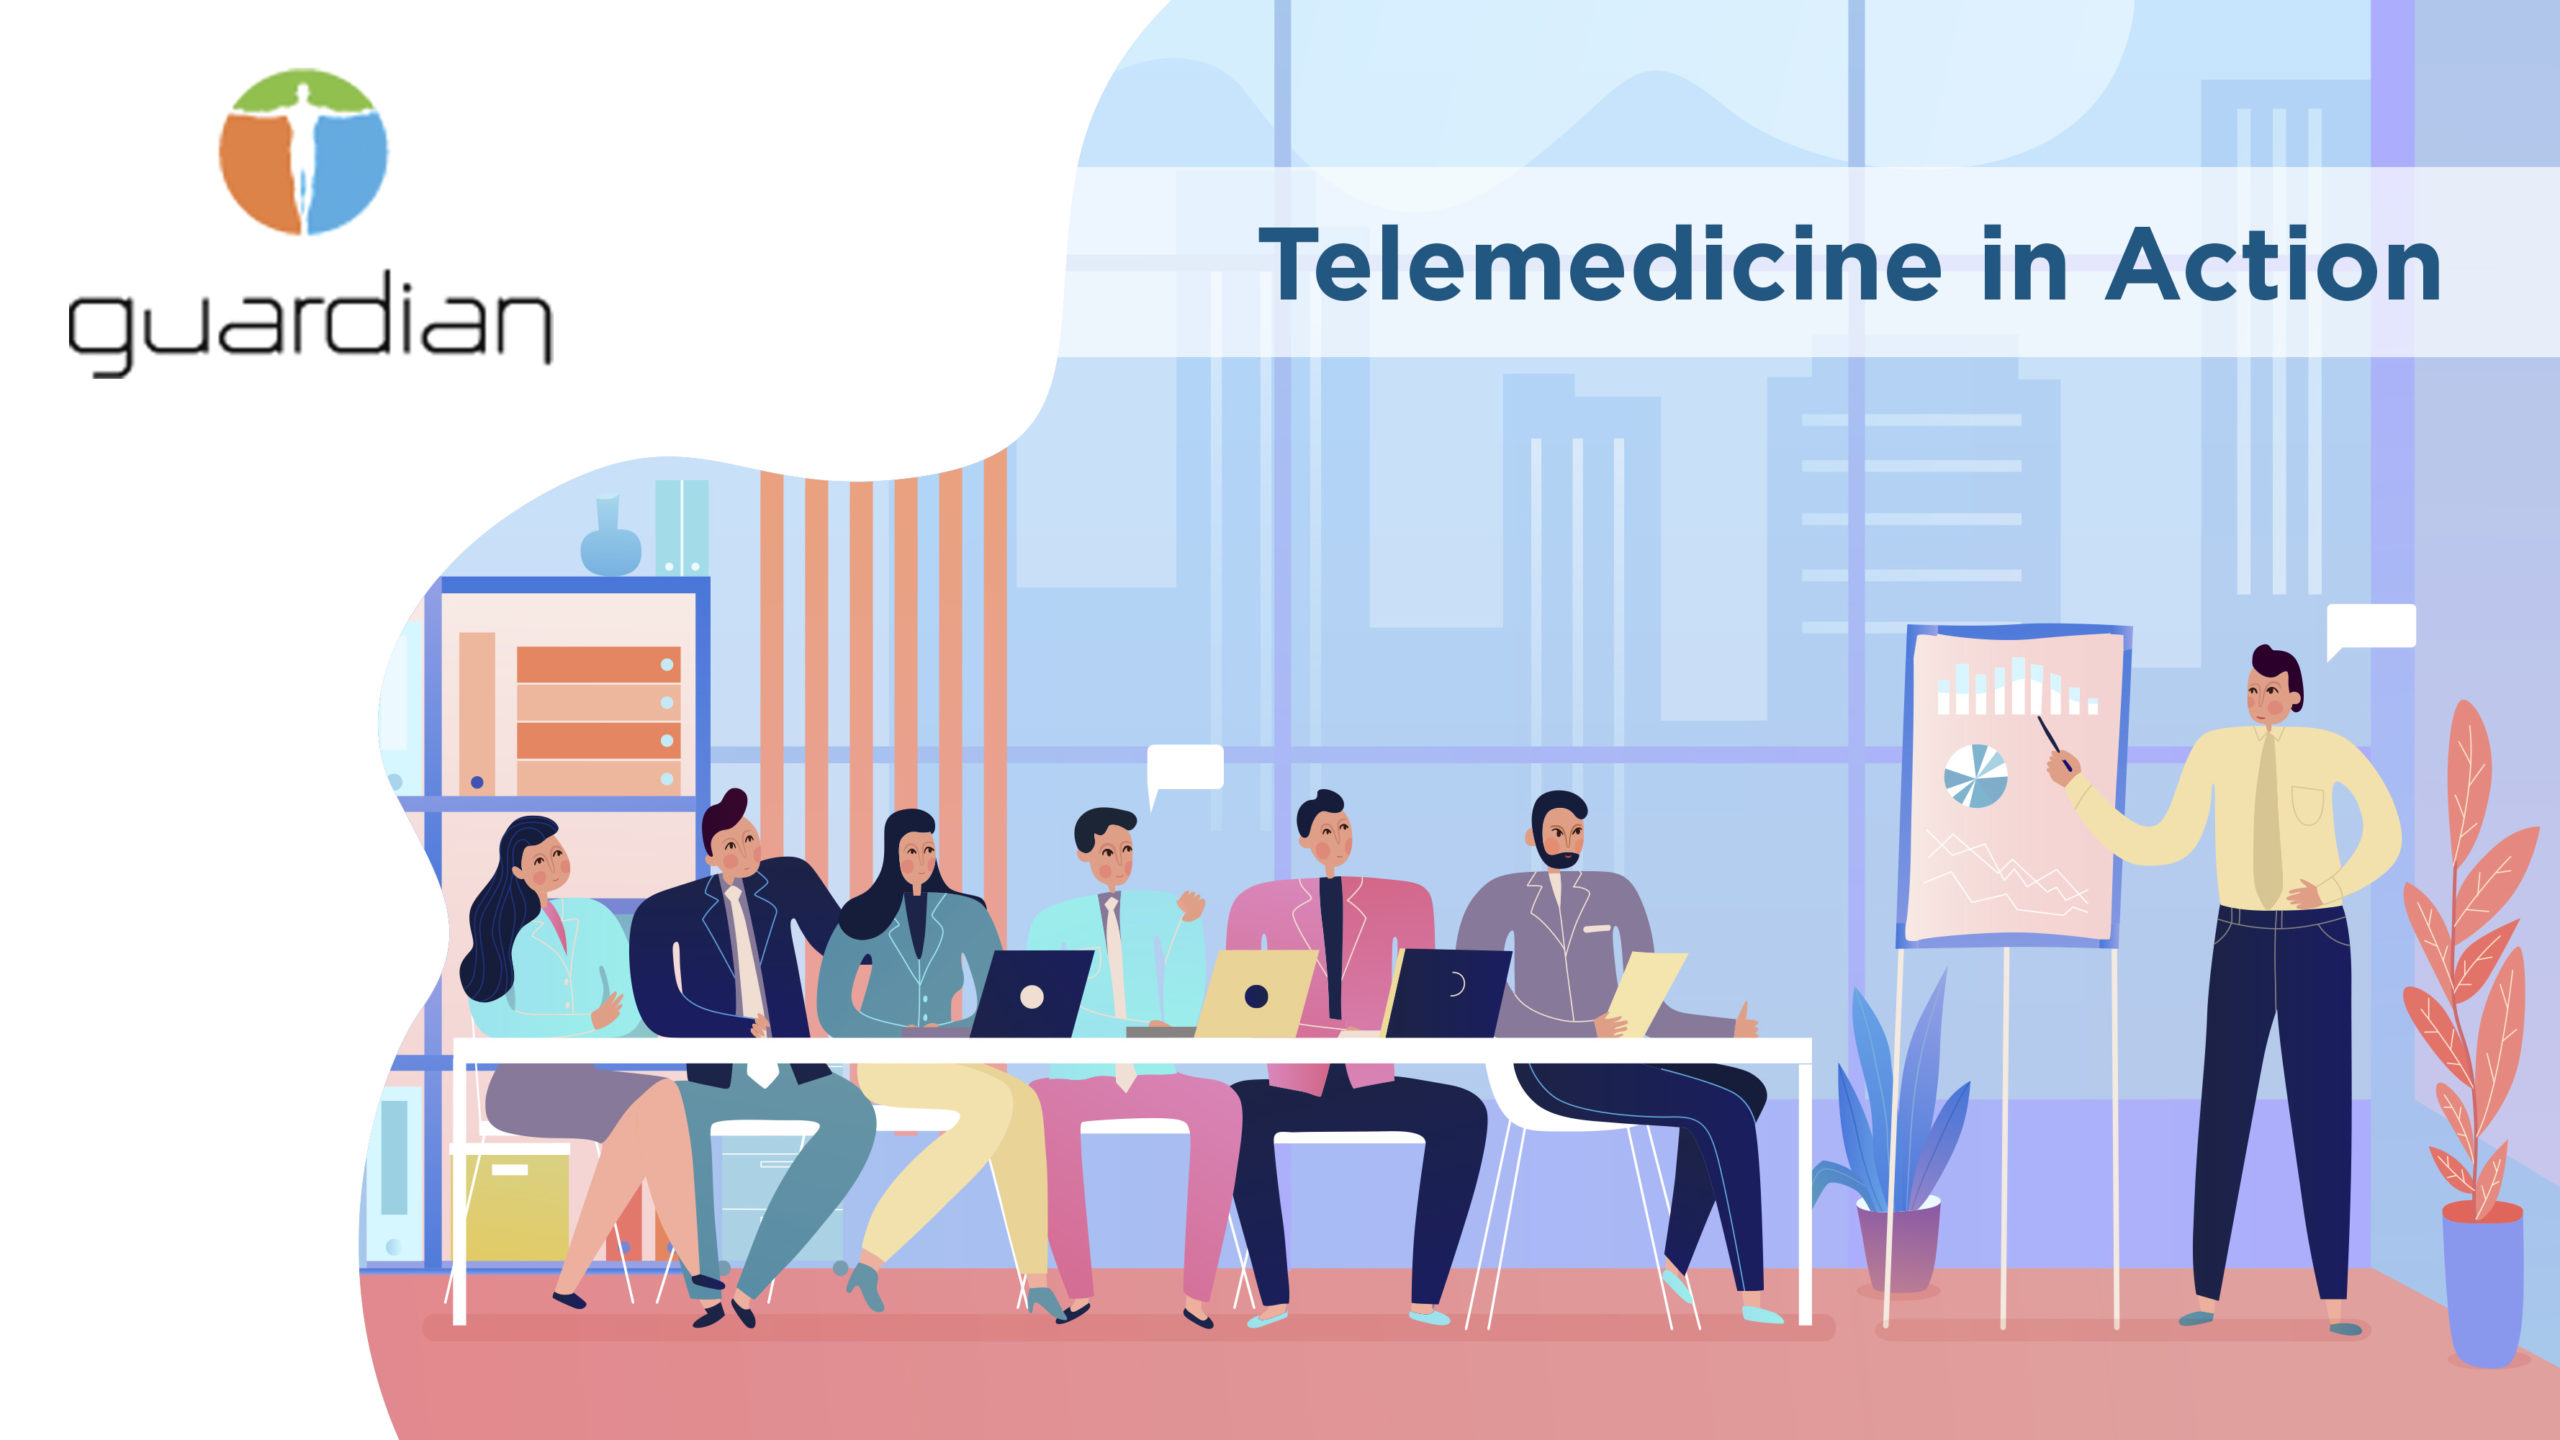 Guardian Telemedicine in Action – March 17, 2020